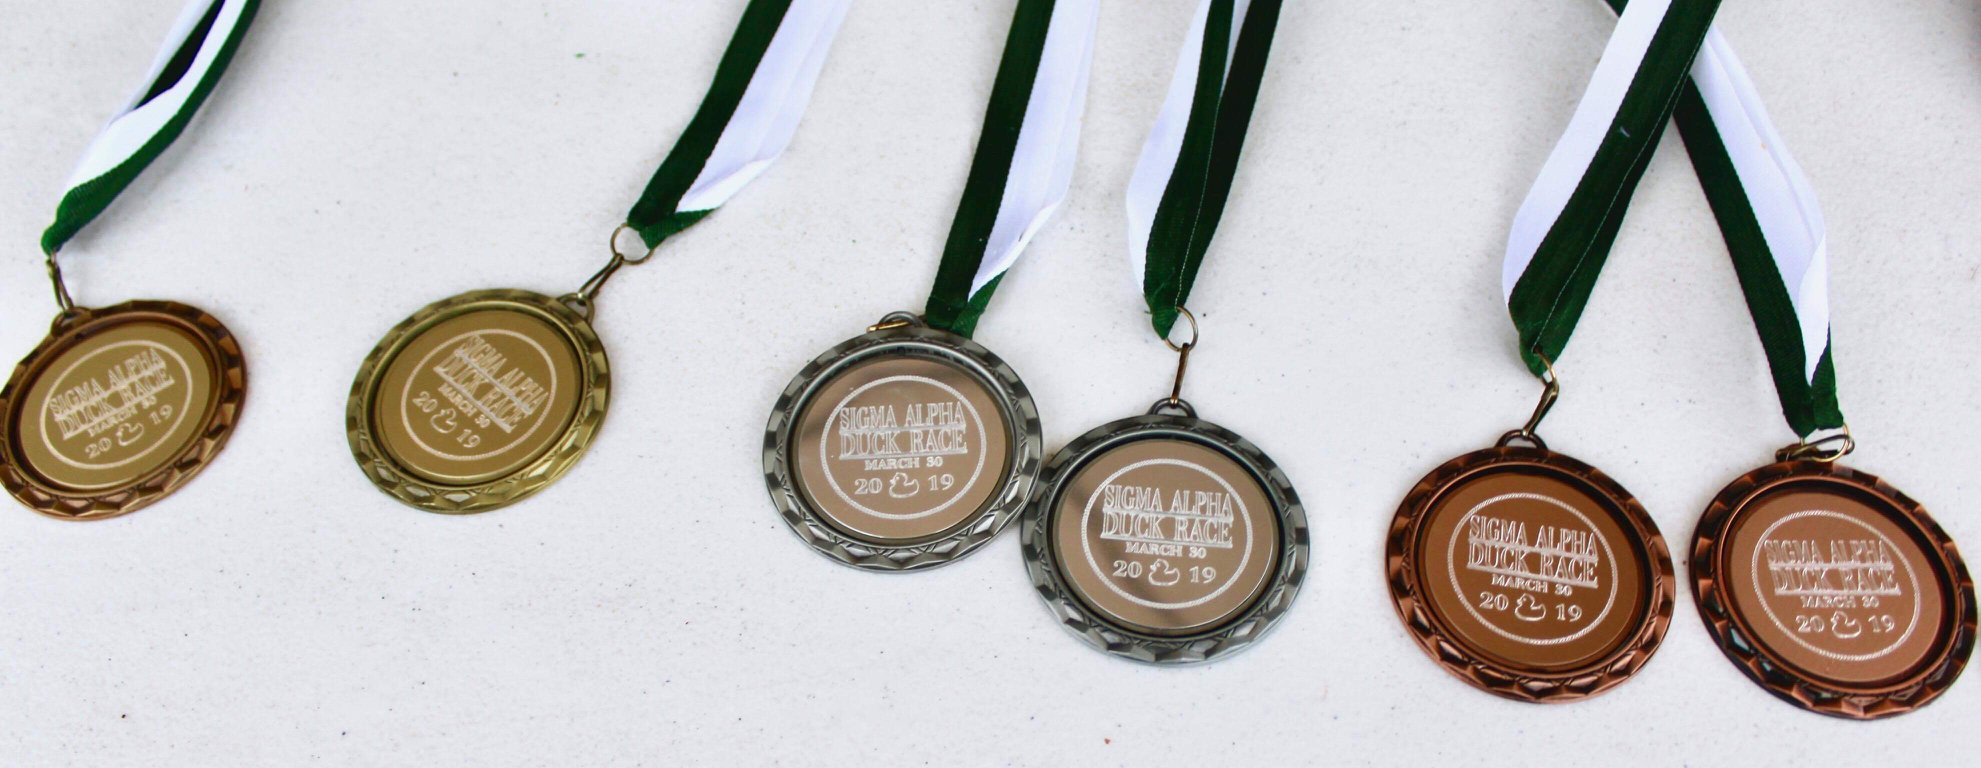 Sigma Alpha 5K Duck Race Medals